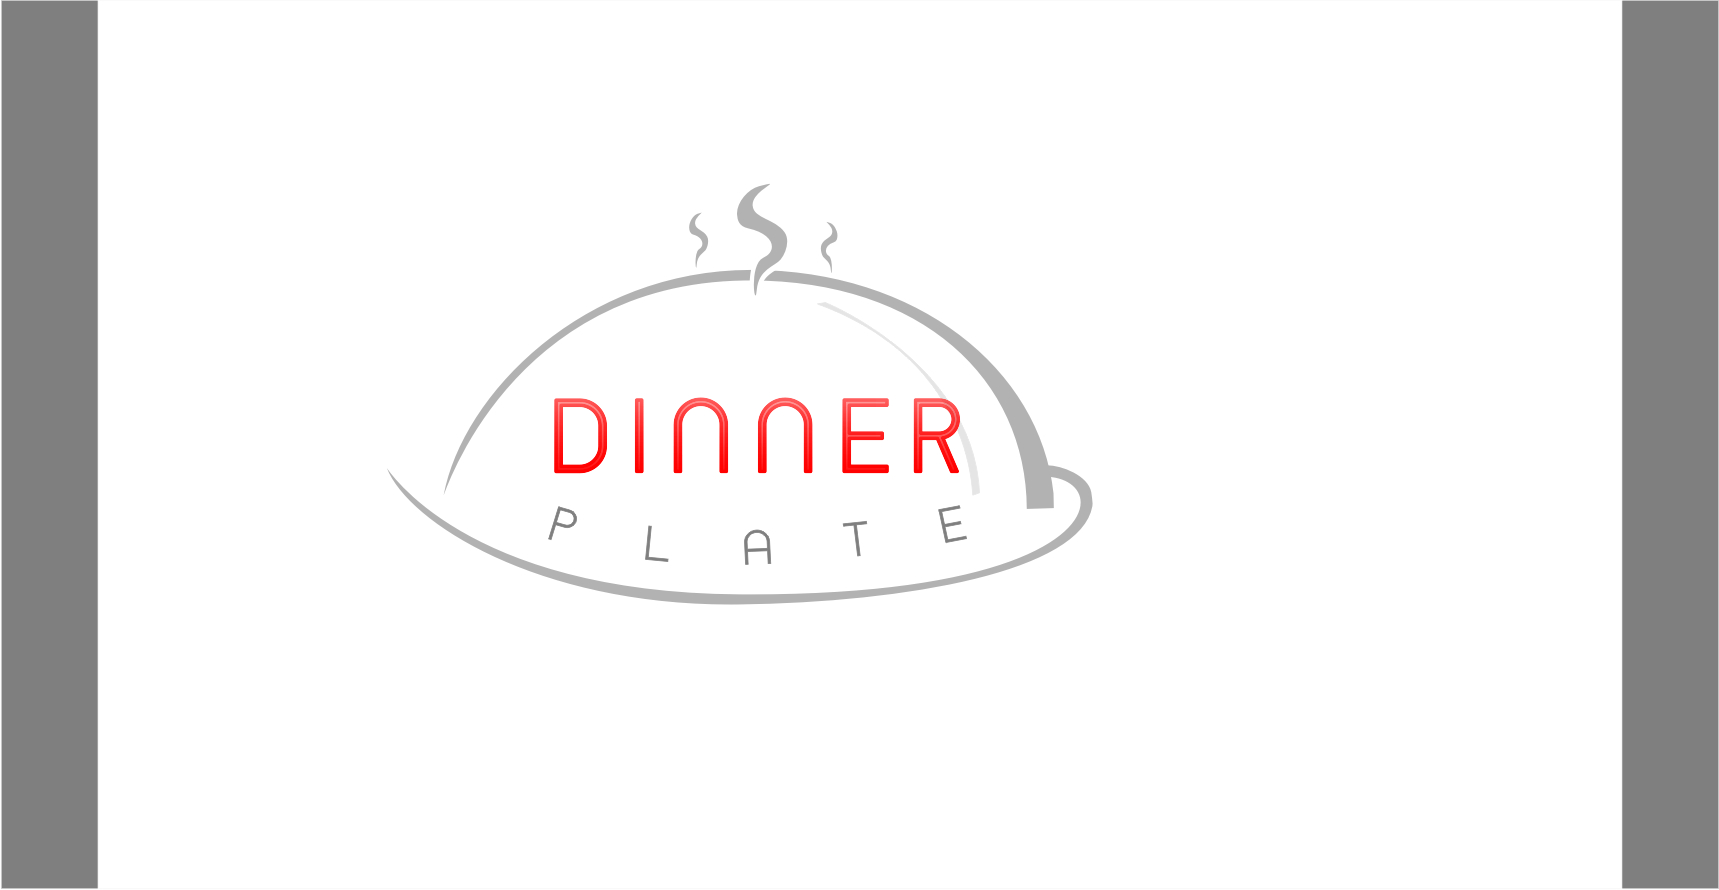 Logo Design by Shailender Kumar - Entry No. 17 in the Logo Design Contest Imaginative Logo Design for Dinner Plate.